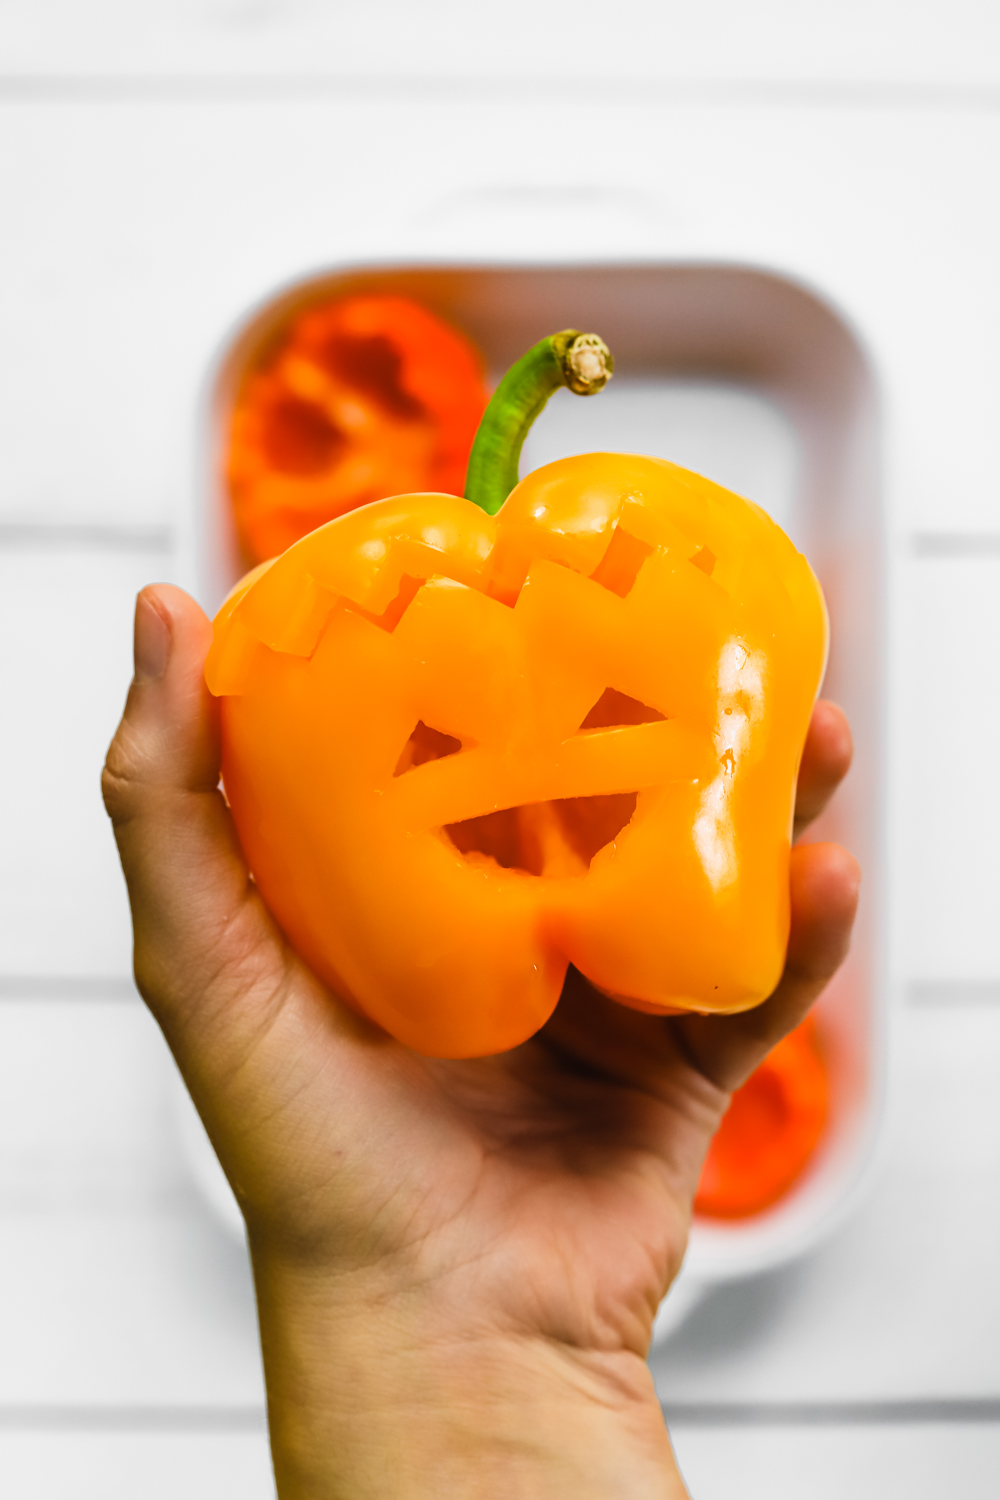 A yellow bell pepper with the happiest spooky little jack o'lantern face carved out of it.